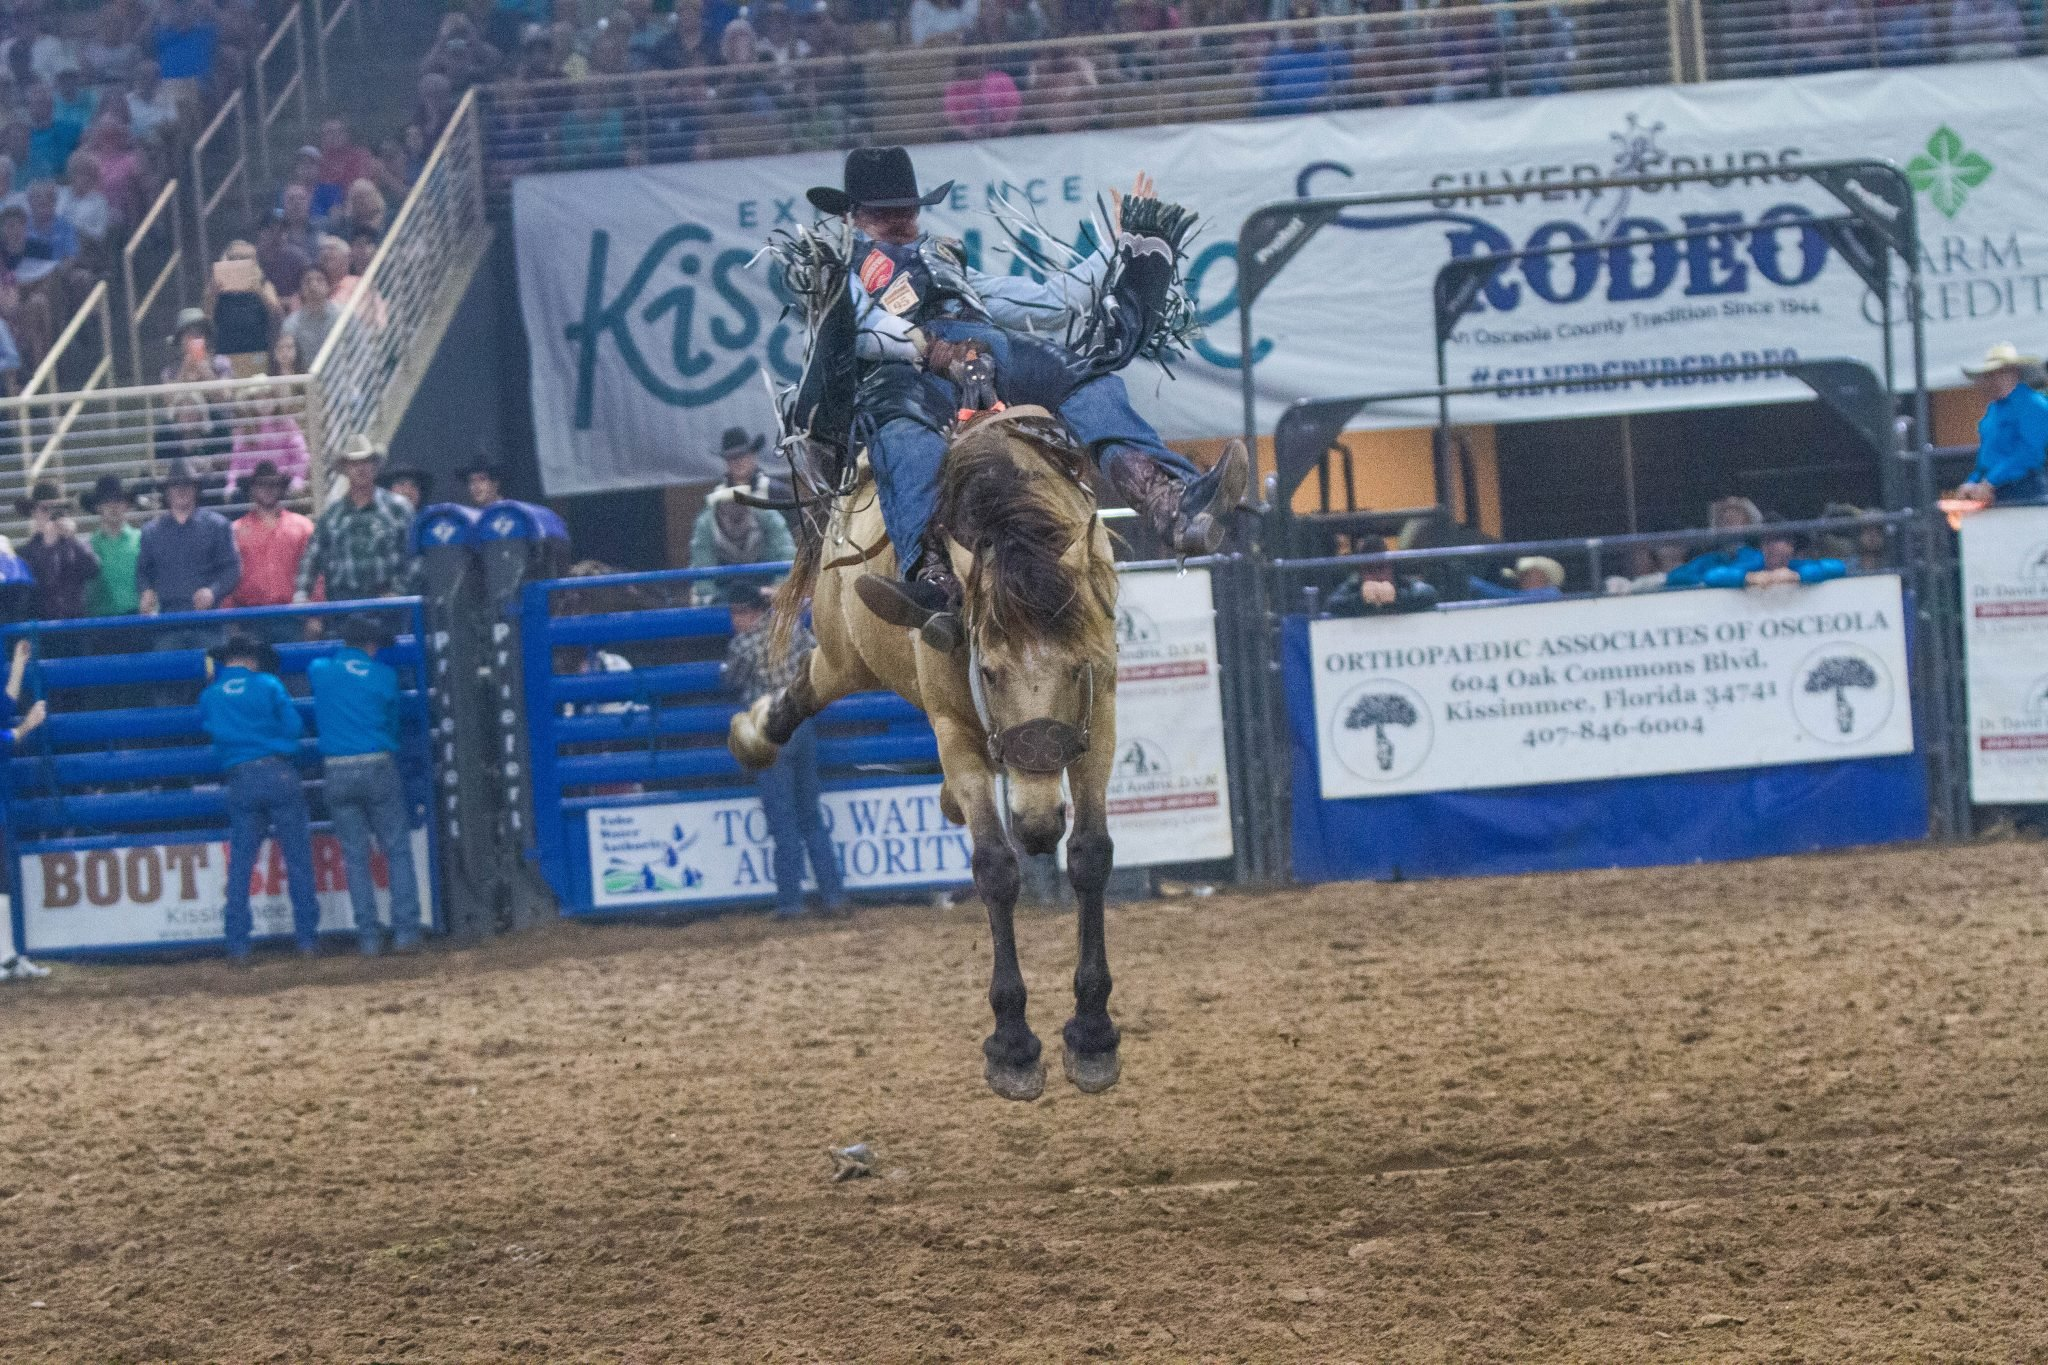 cowboy on the back of a bucking bronc at a rodeo